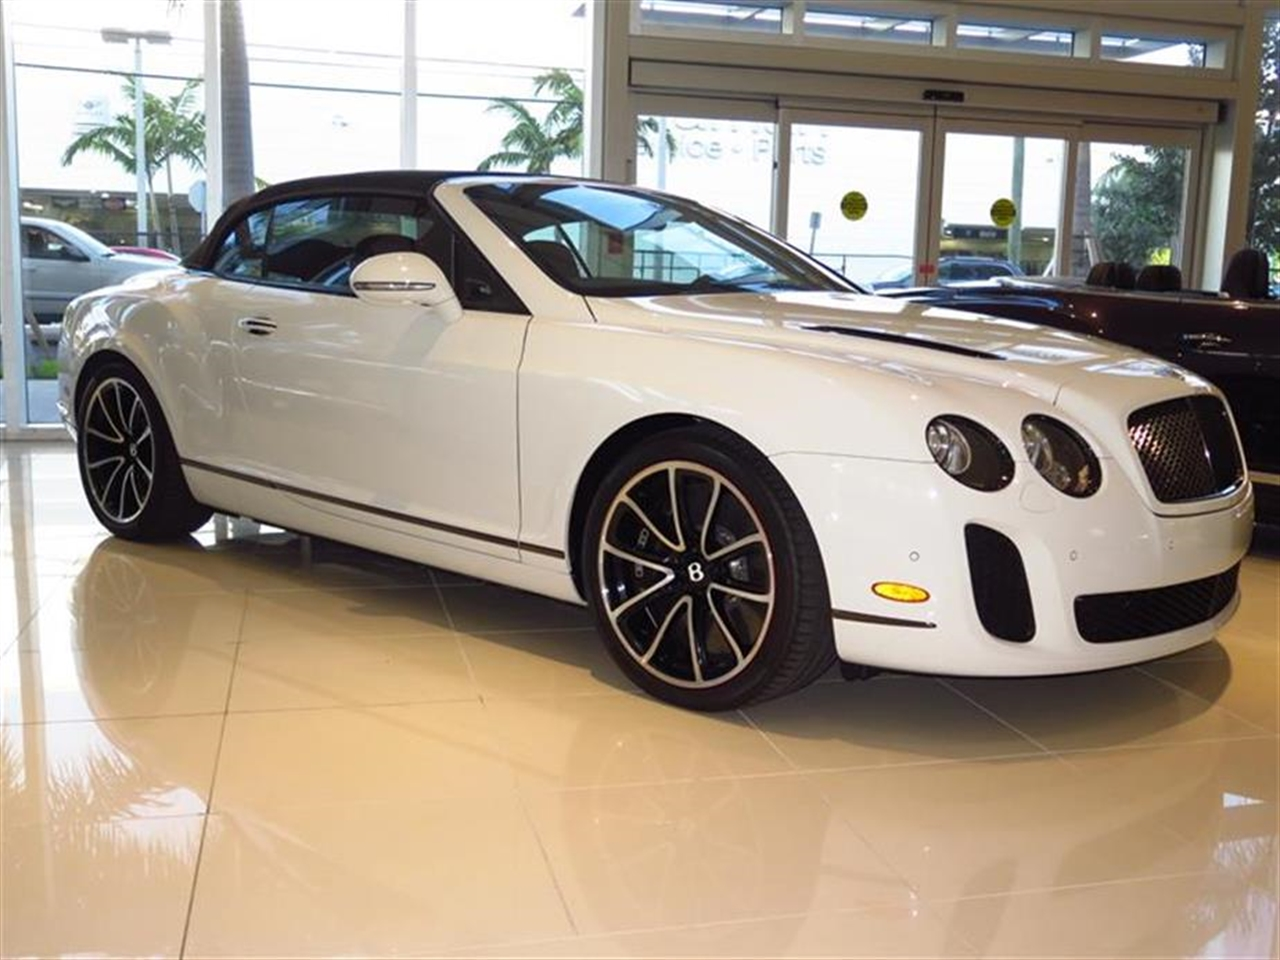 2013 BENTLEY CONTINENTAL SUPERSPORTS 2dr Conv Supersports ISR 13292 miles 3-spoke single-tone lea